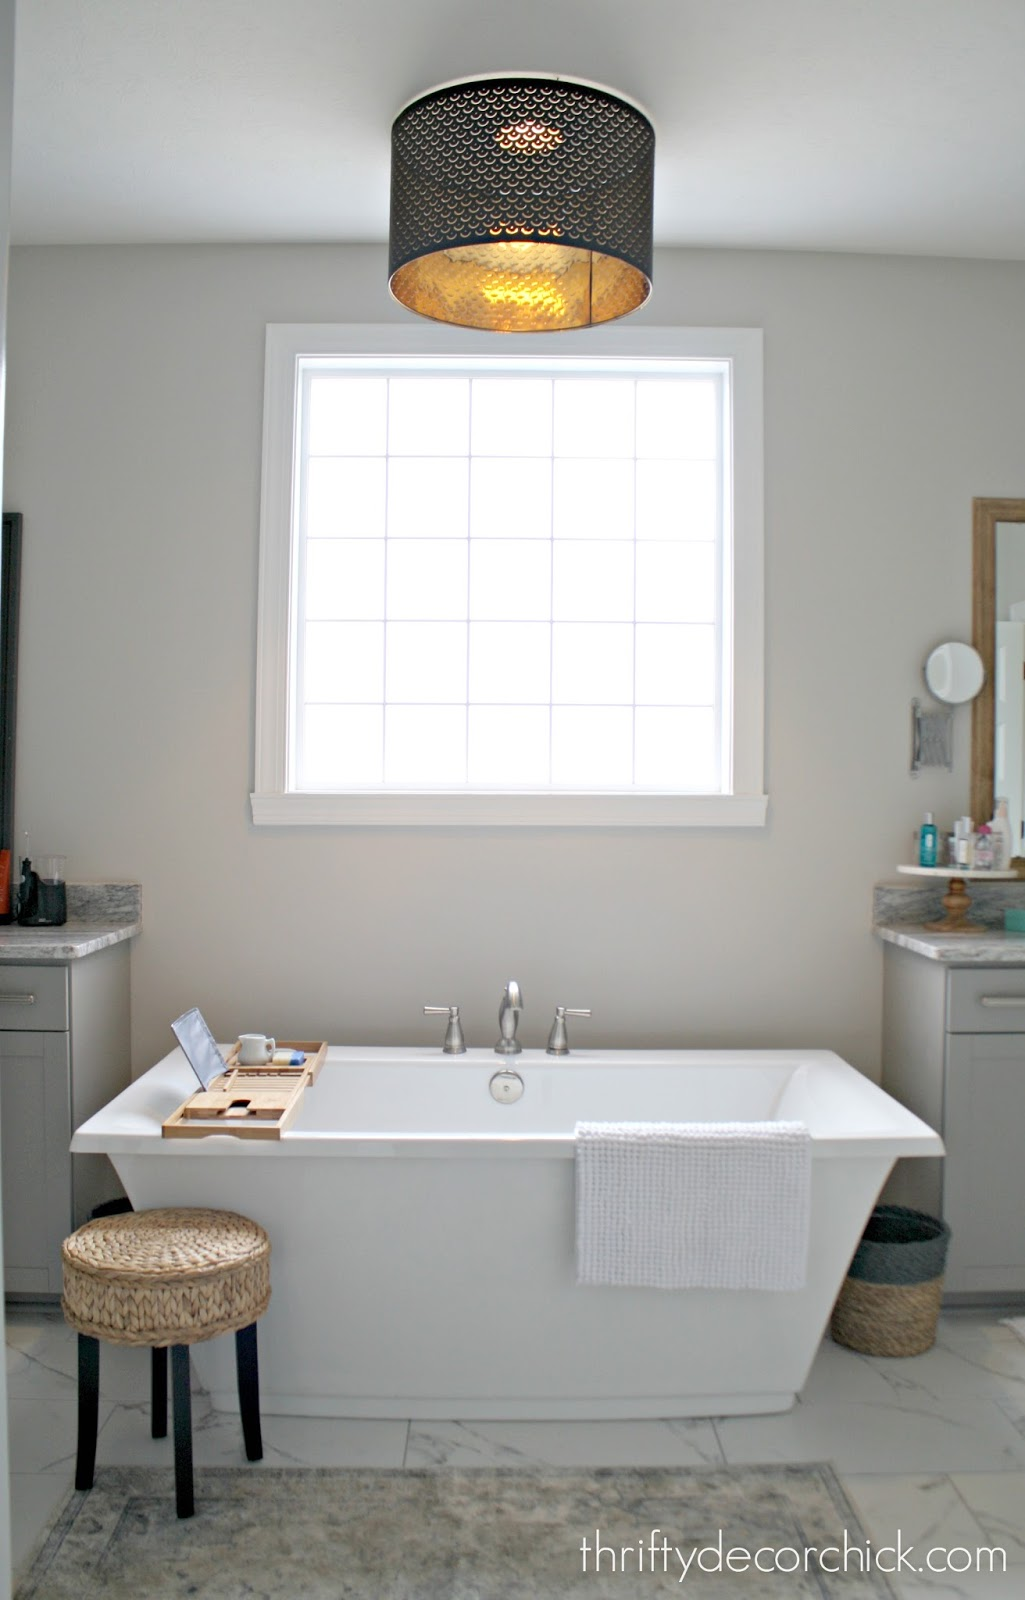 Safely hanging a light over a tub